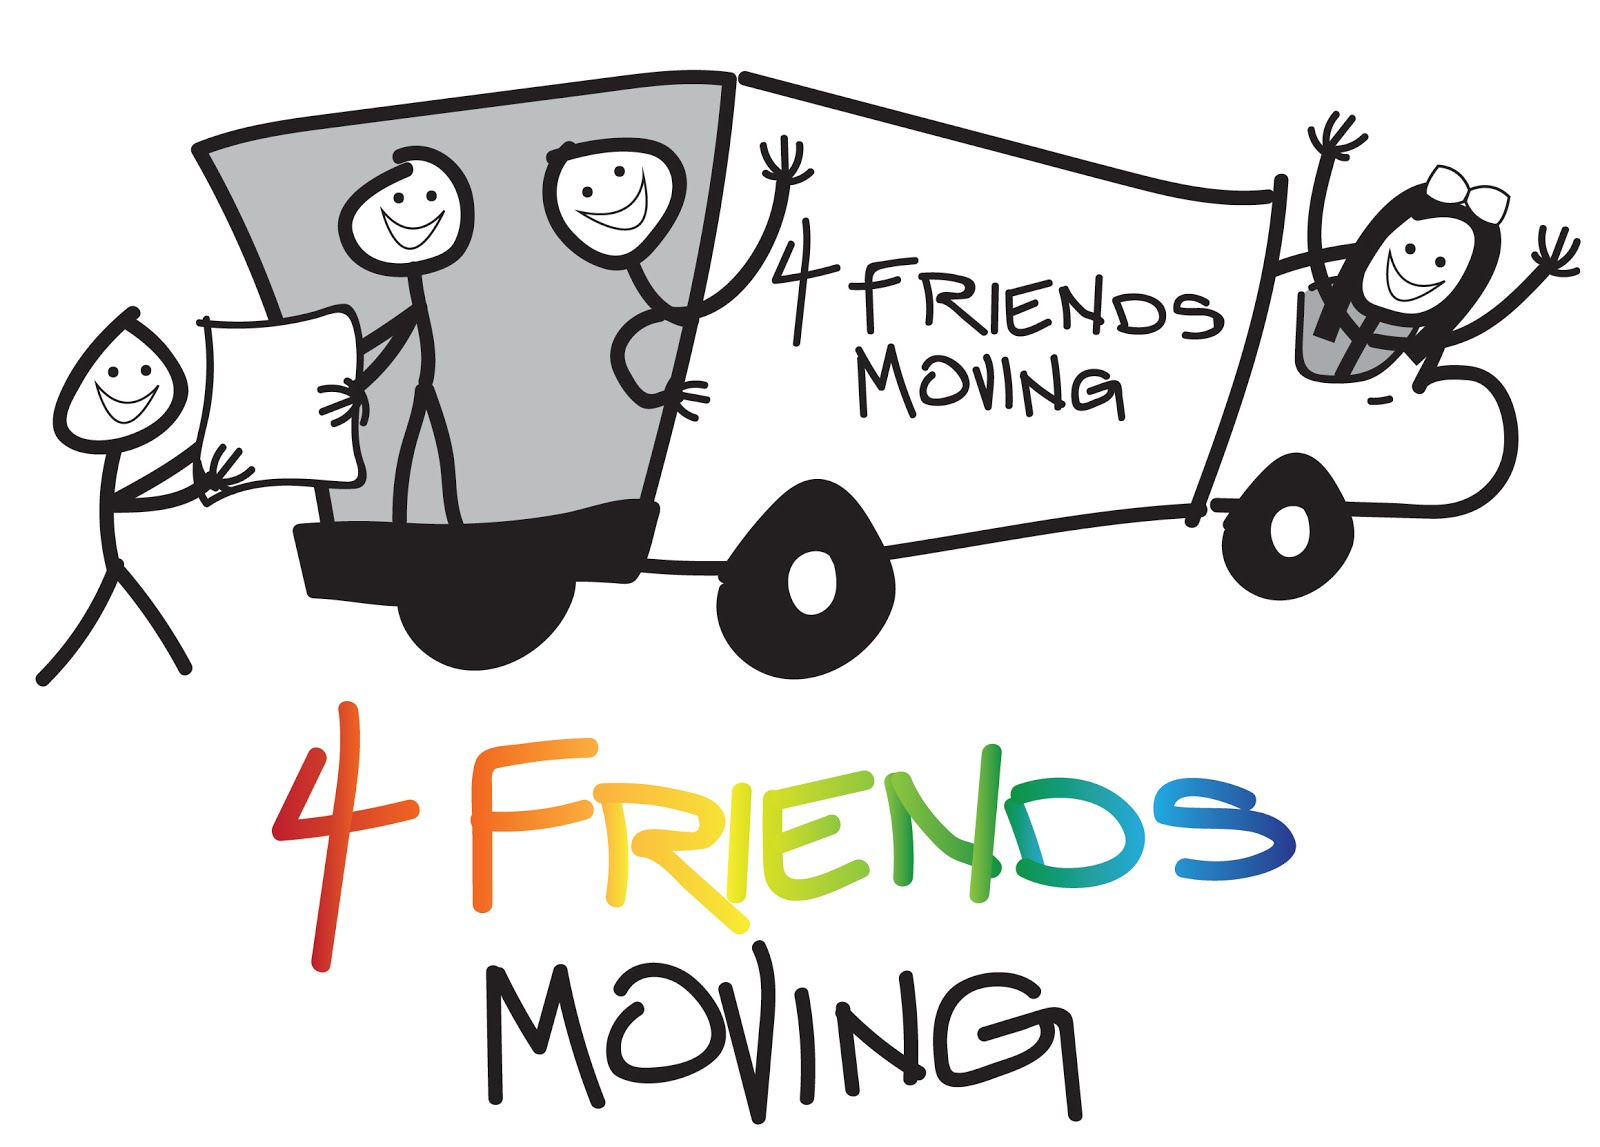 www.4FriendsMoving.com